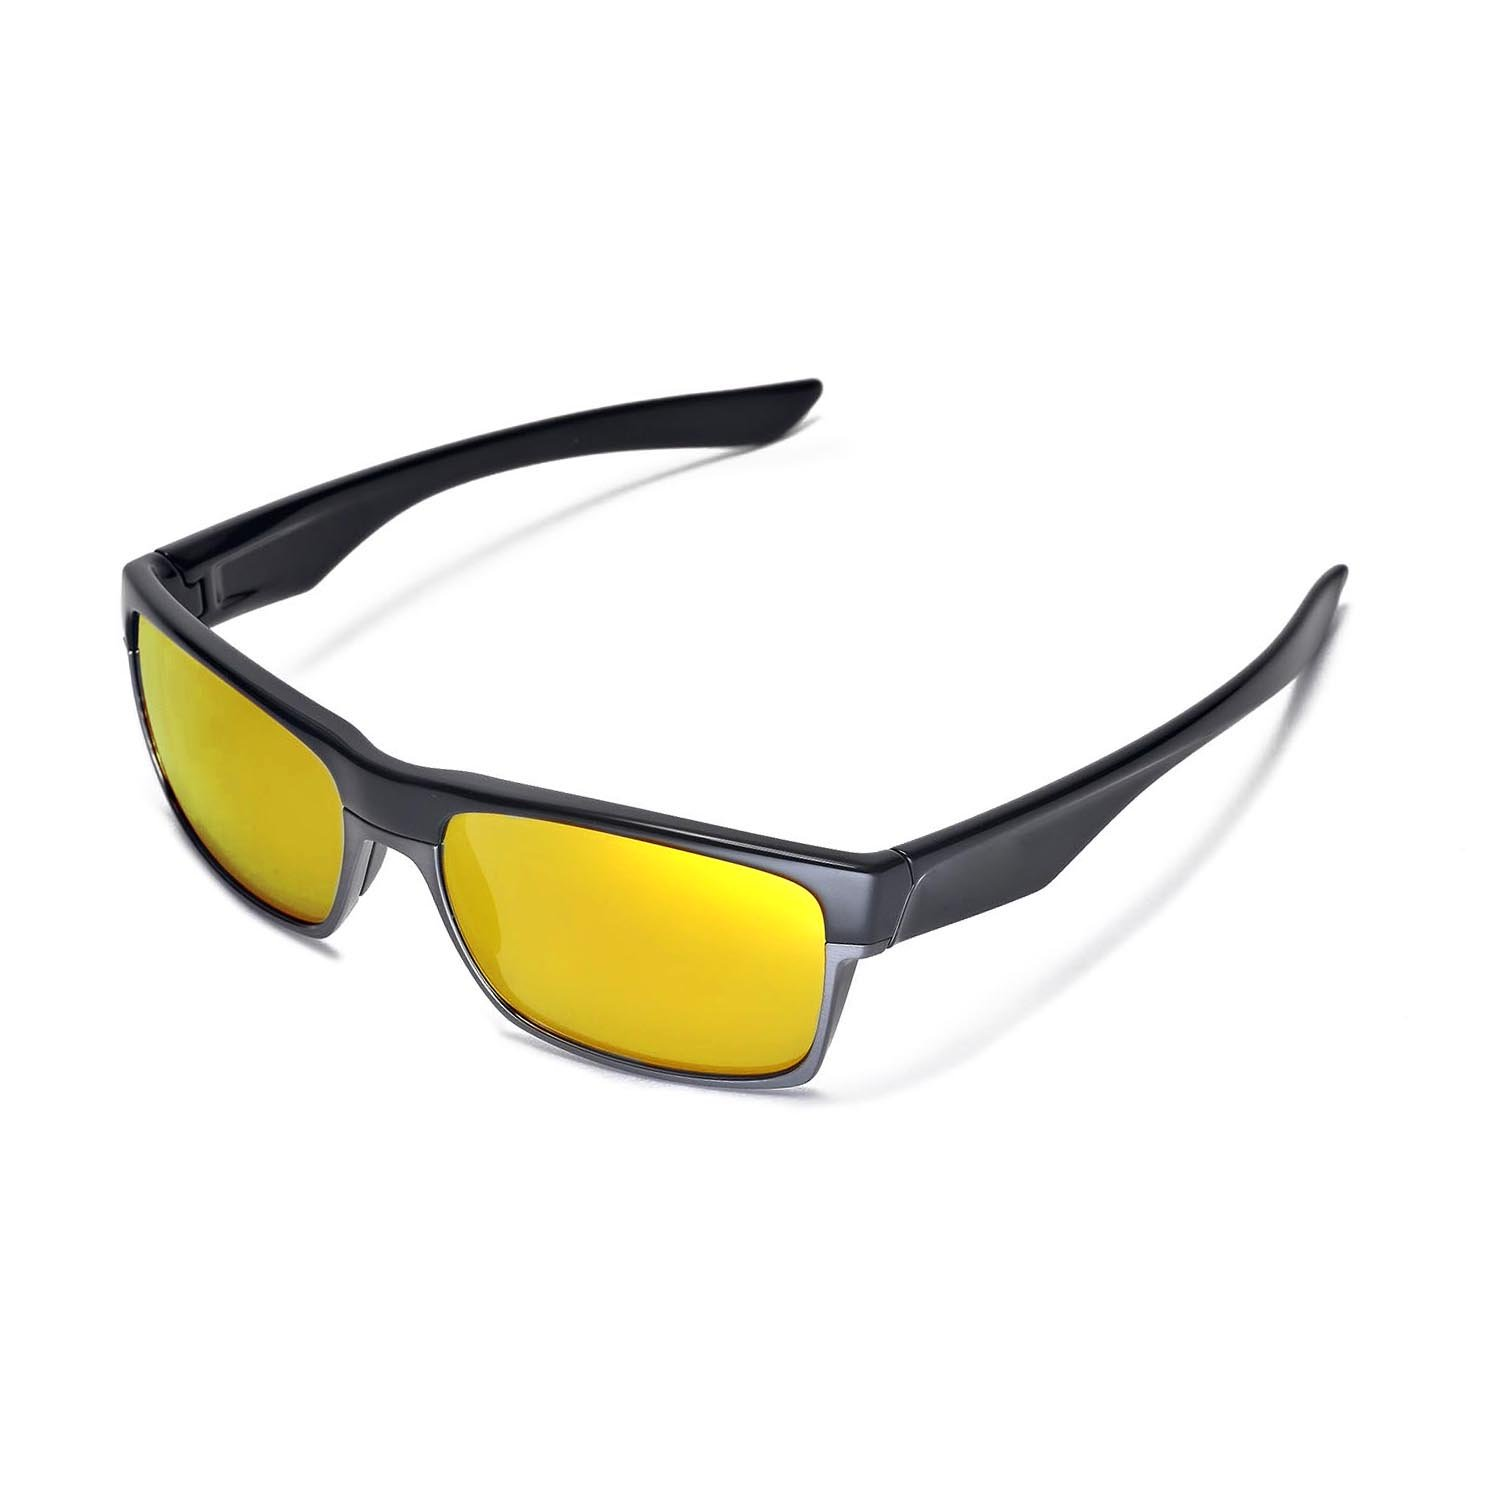 a73037cca0 Amazon.com  Walleva Replacement Lenses for Oakley TwoFace Sunglasses - 6  Options Available (24K Gold - Polarized)  Sports   Outdoors